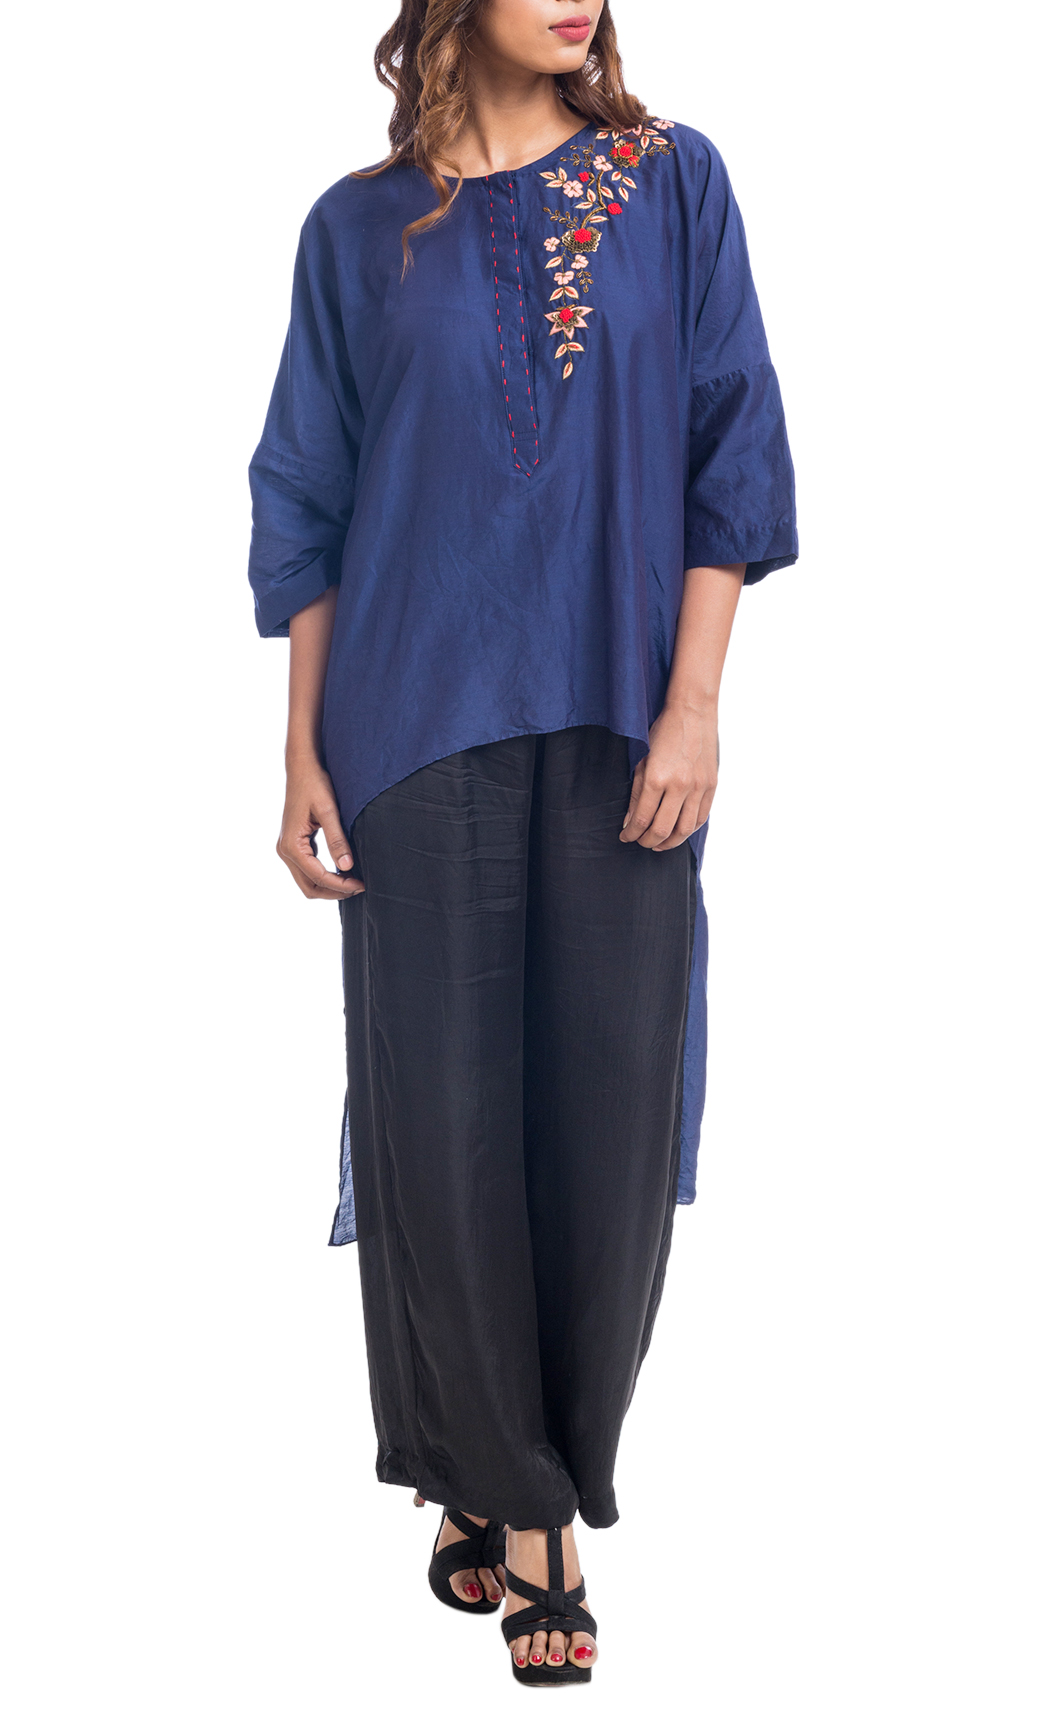 Blue Embroidered High-Low Tunic